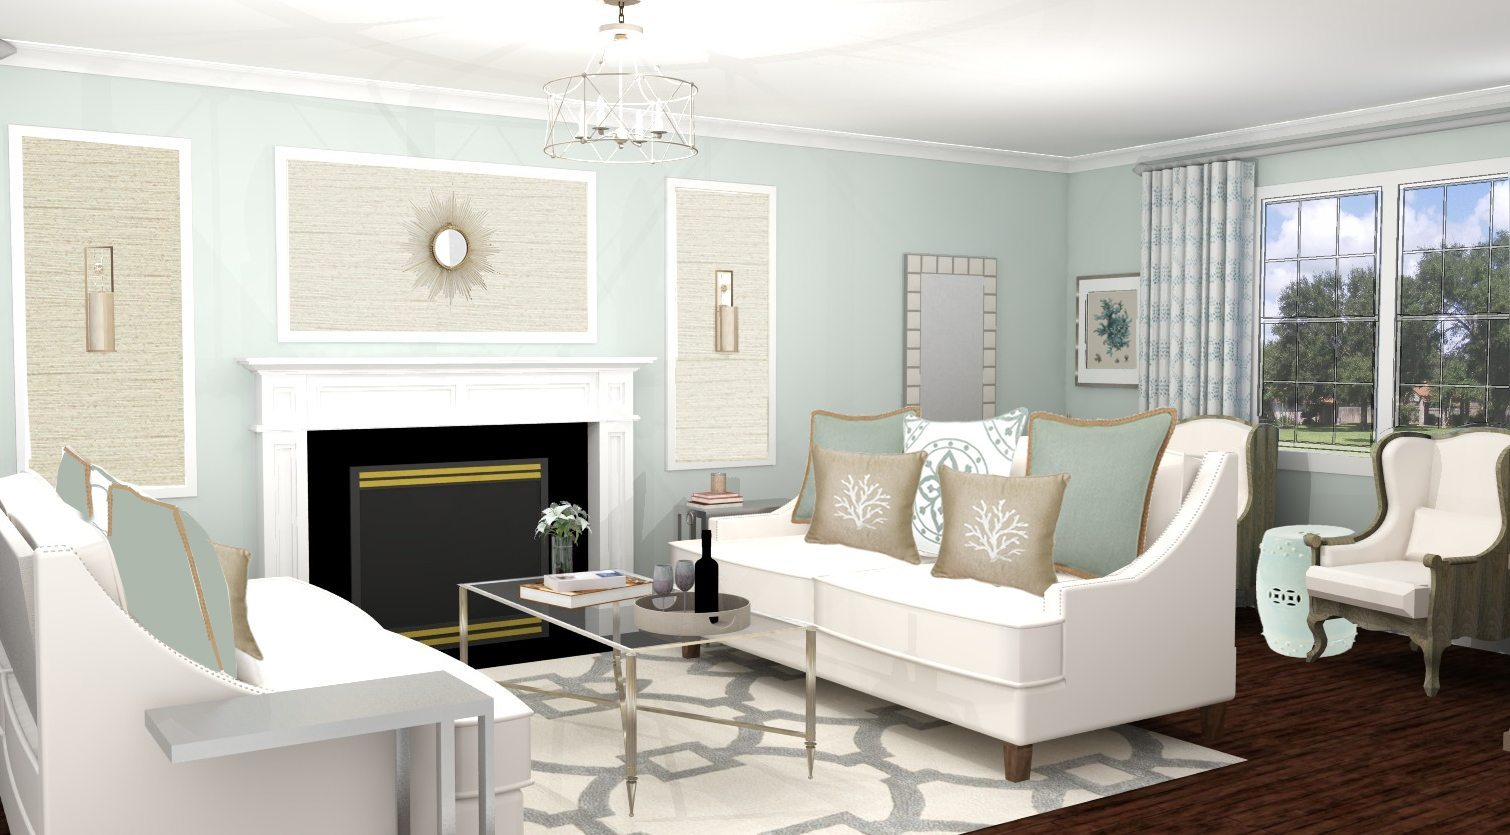 Traditional Living Room Design - Canaan, CT - A Space to Call Home